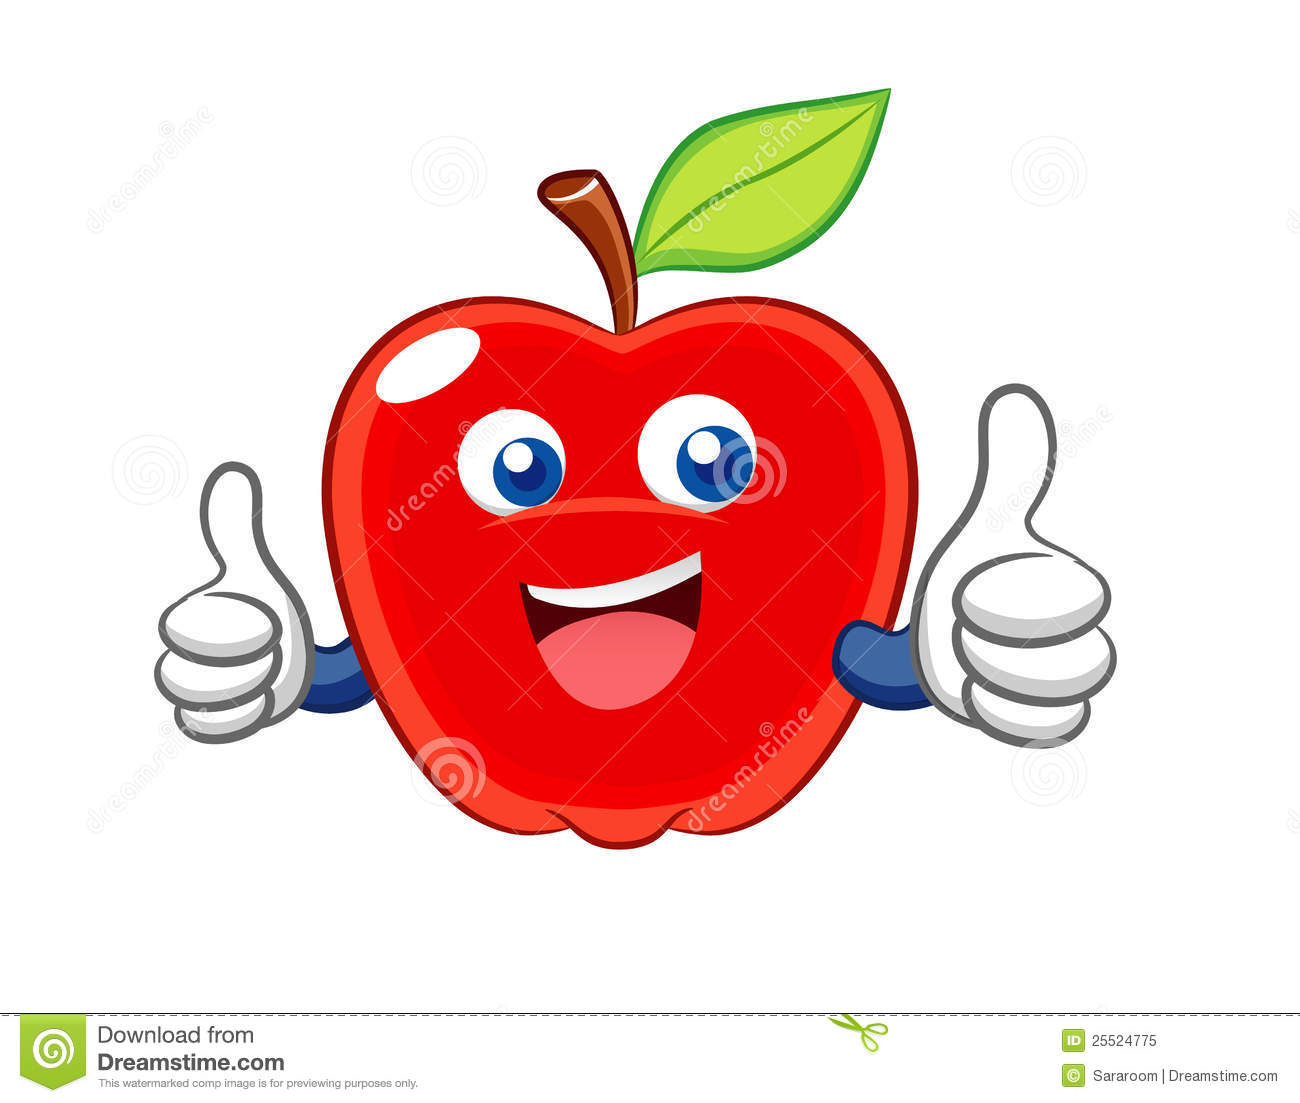 Apple clipart animated, Apple animated Transparent FREE for.